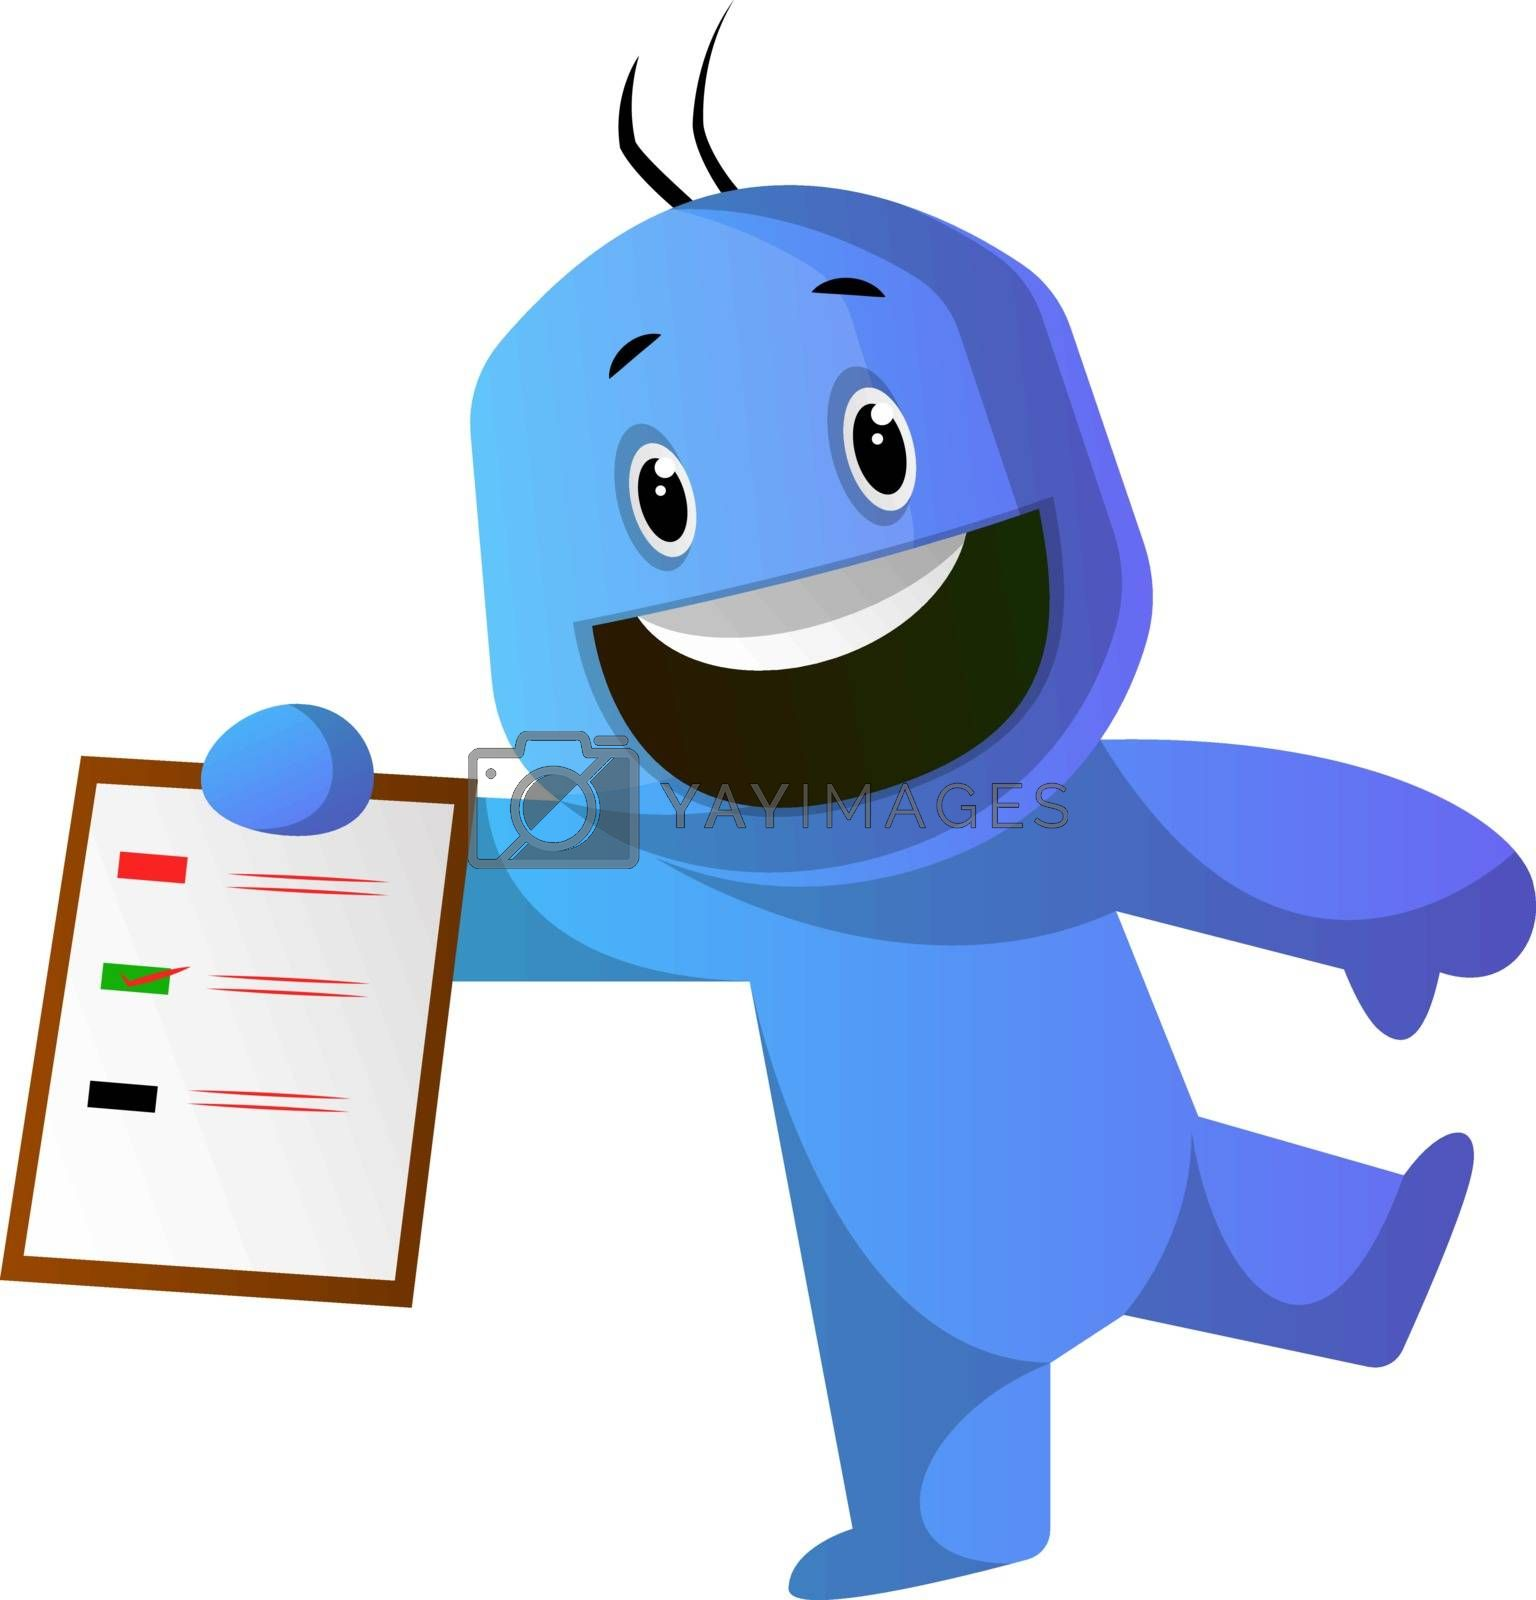 Royalty free image of Smiling blue cartoon caracter with a notepad illustration vector by Morphart